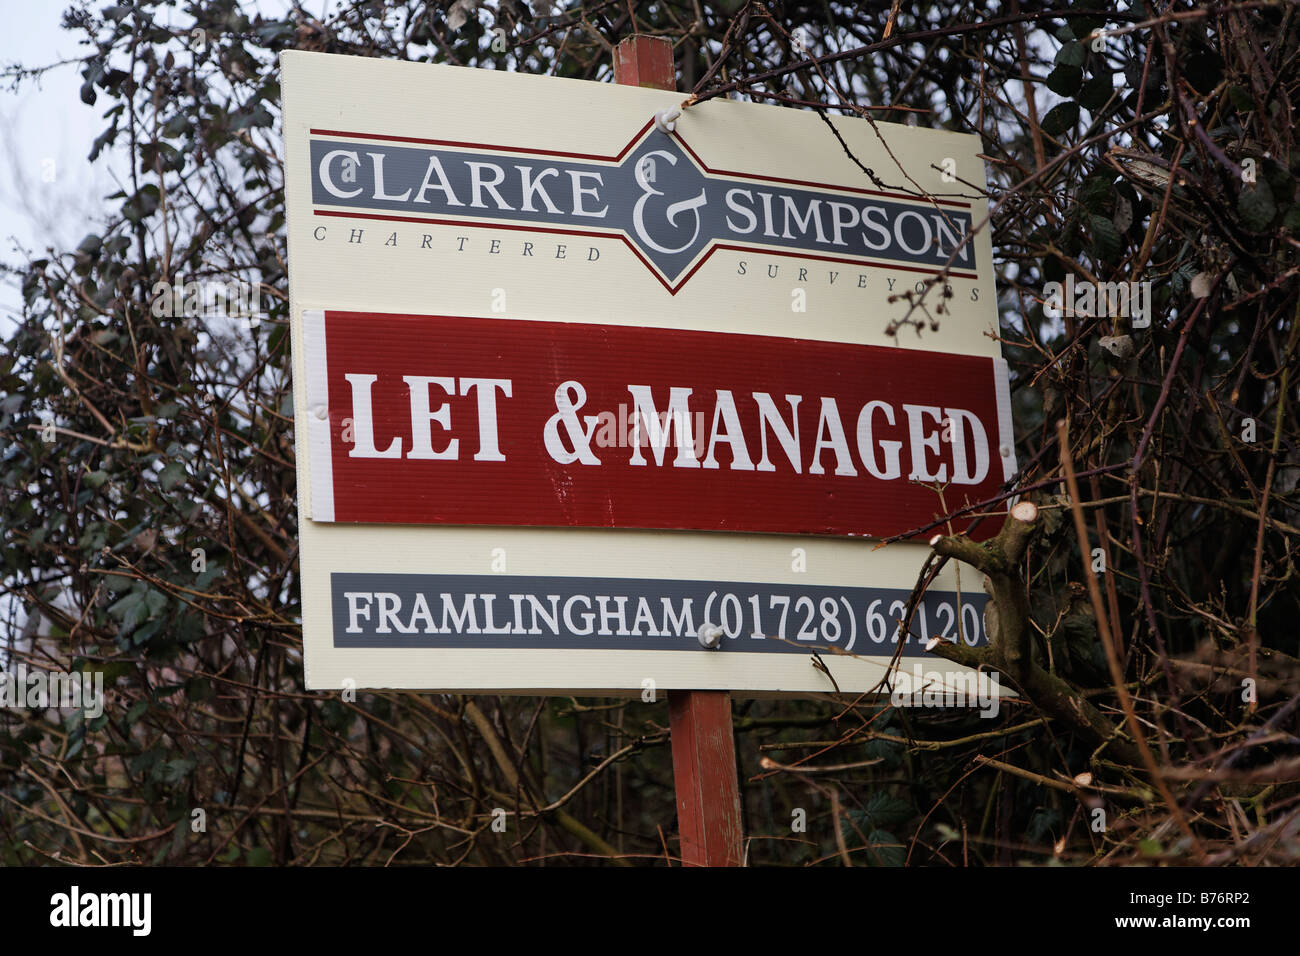 Let and Managed Estate Agents sign - Stock Image